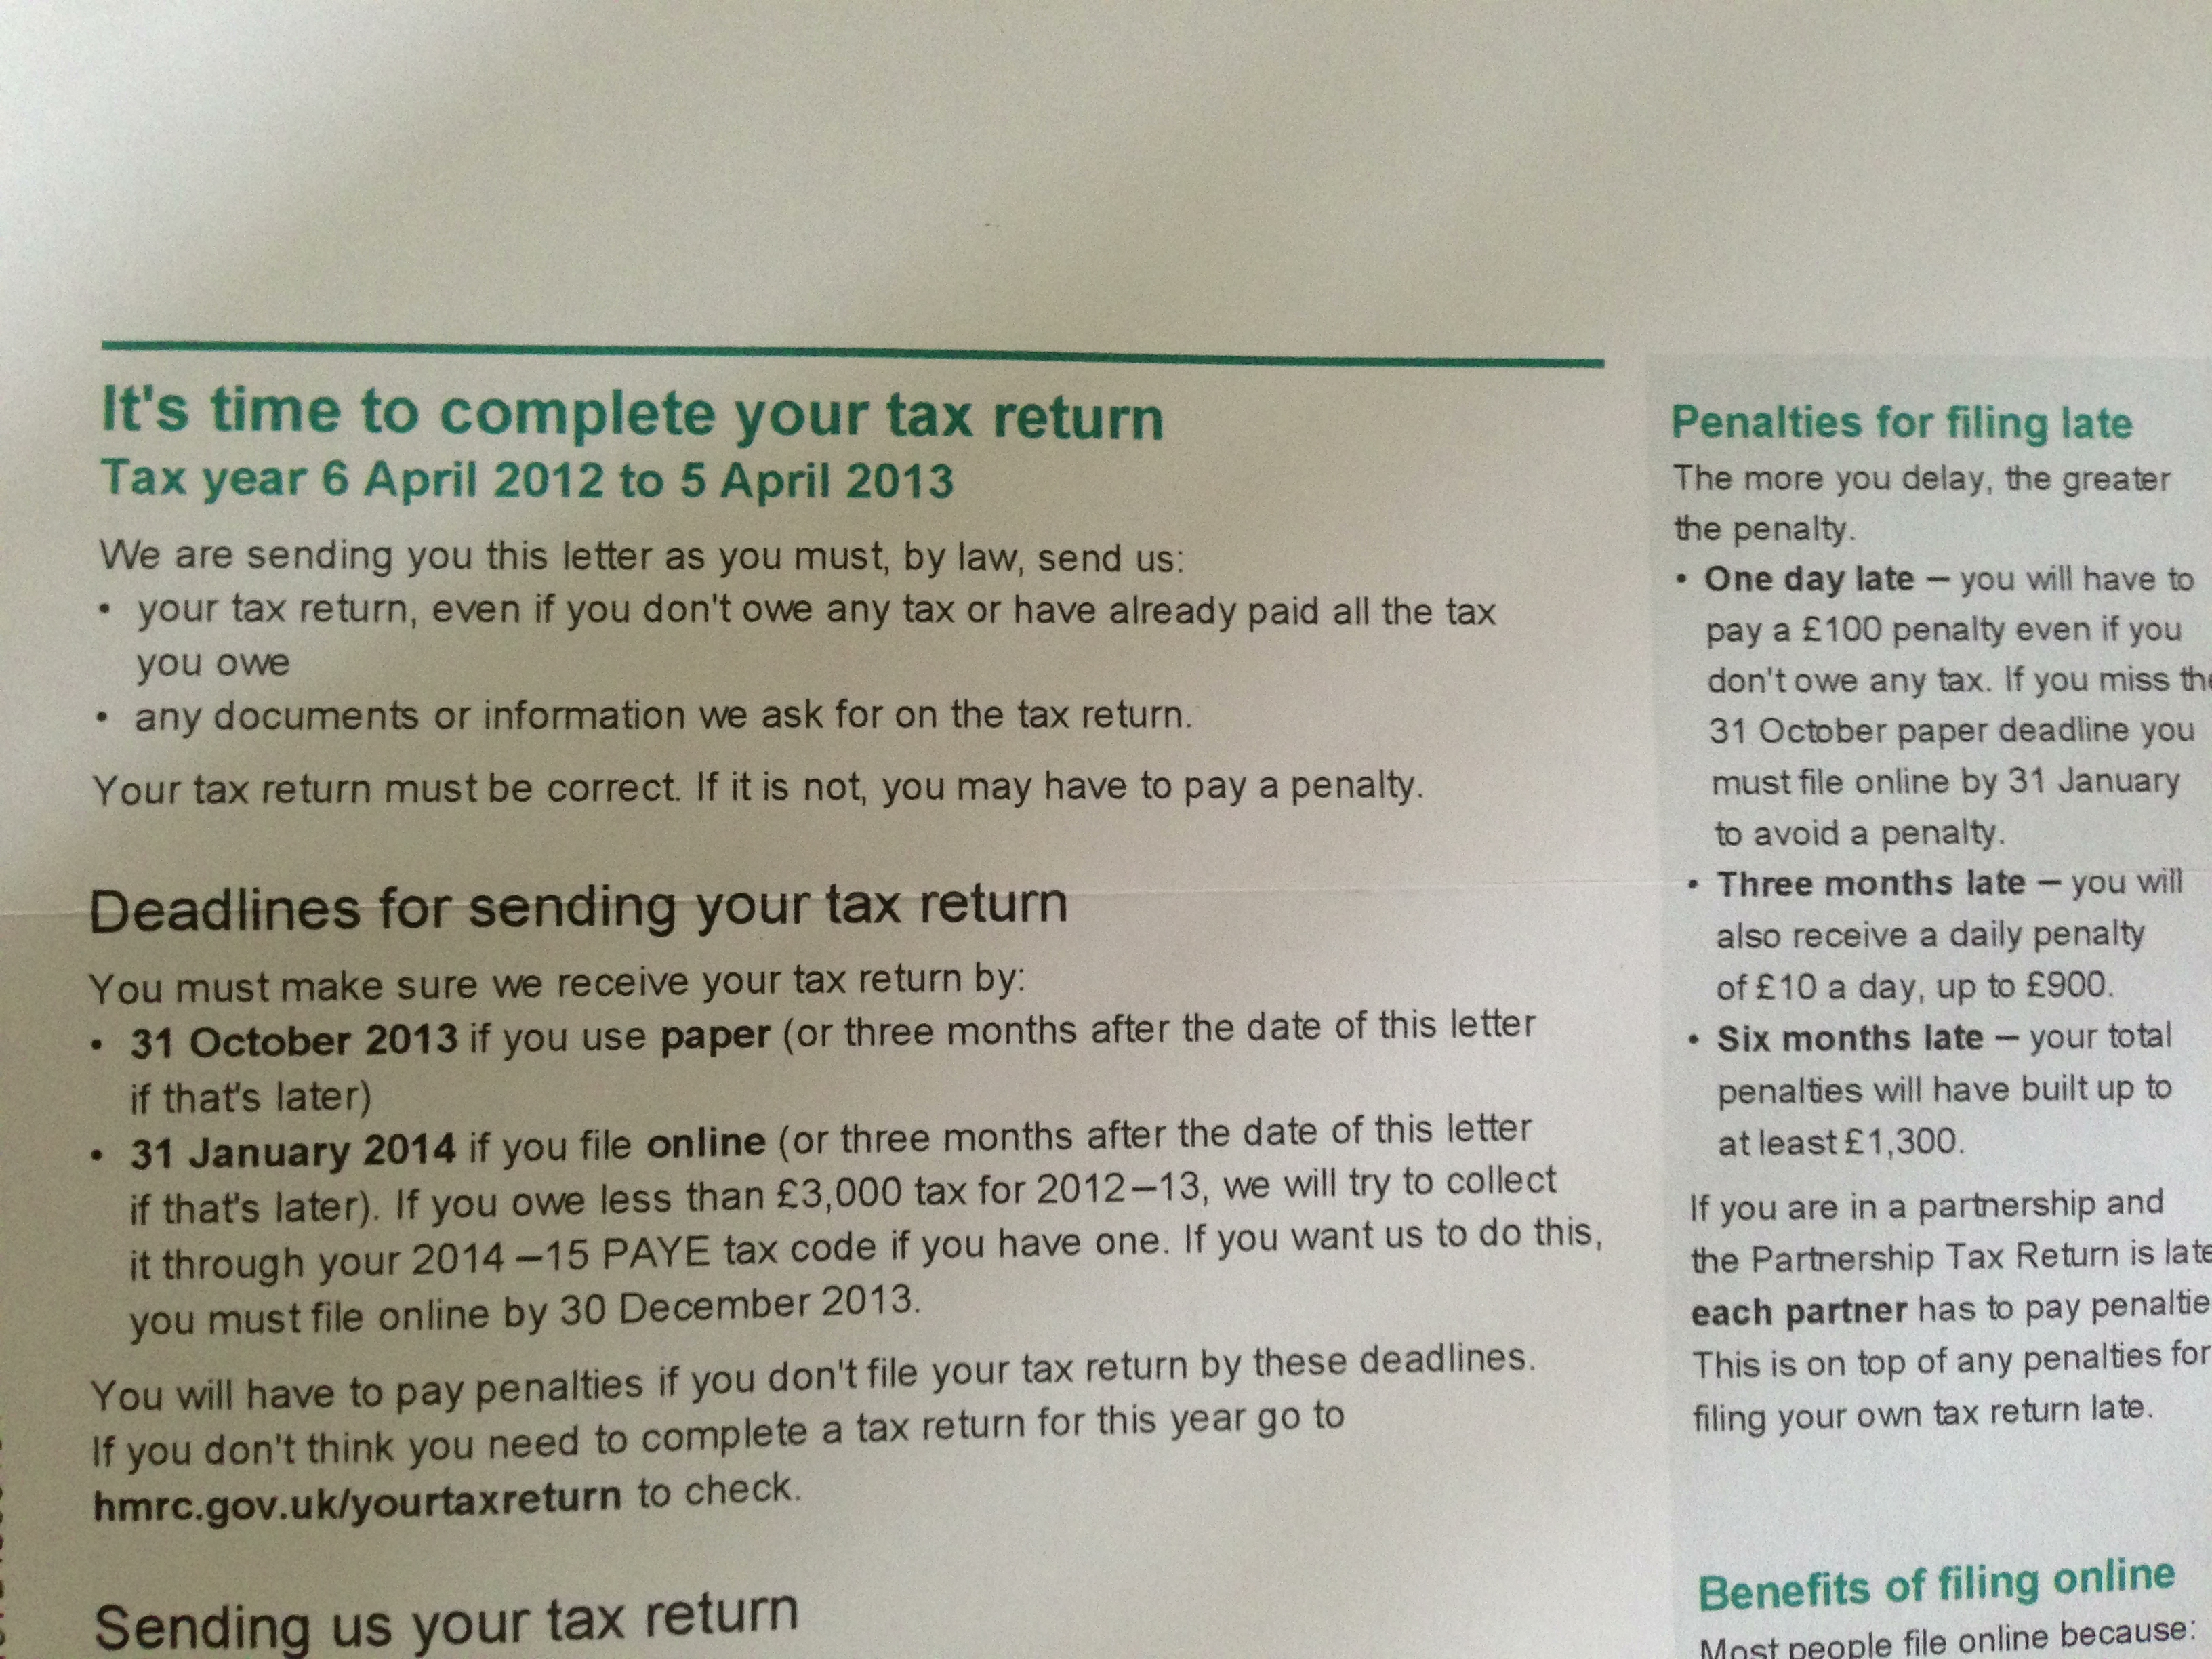 Time to complete your 2013 tax return